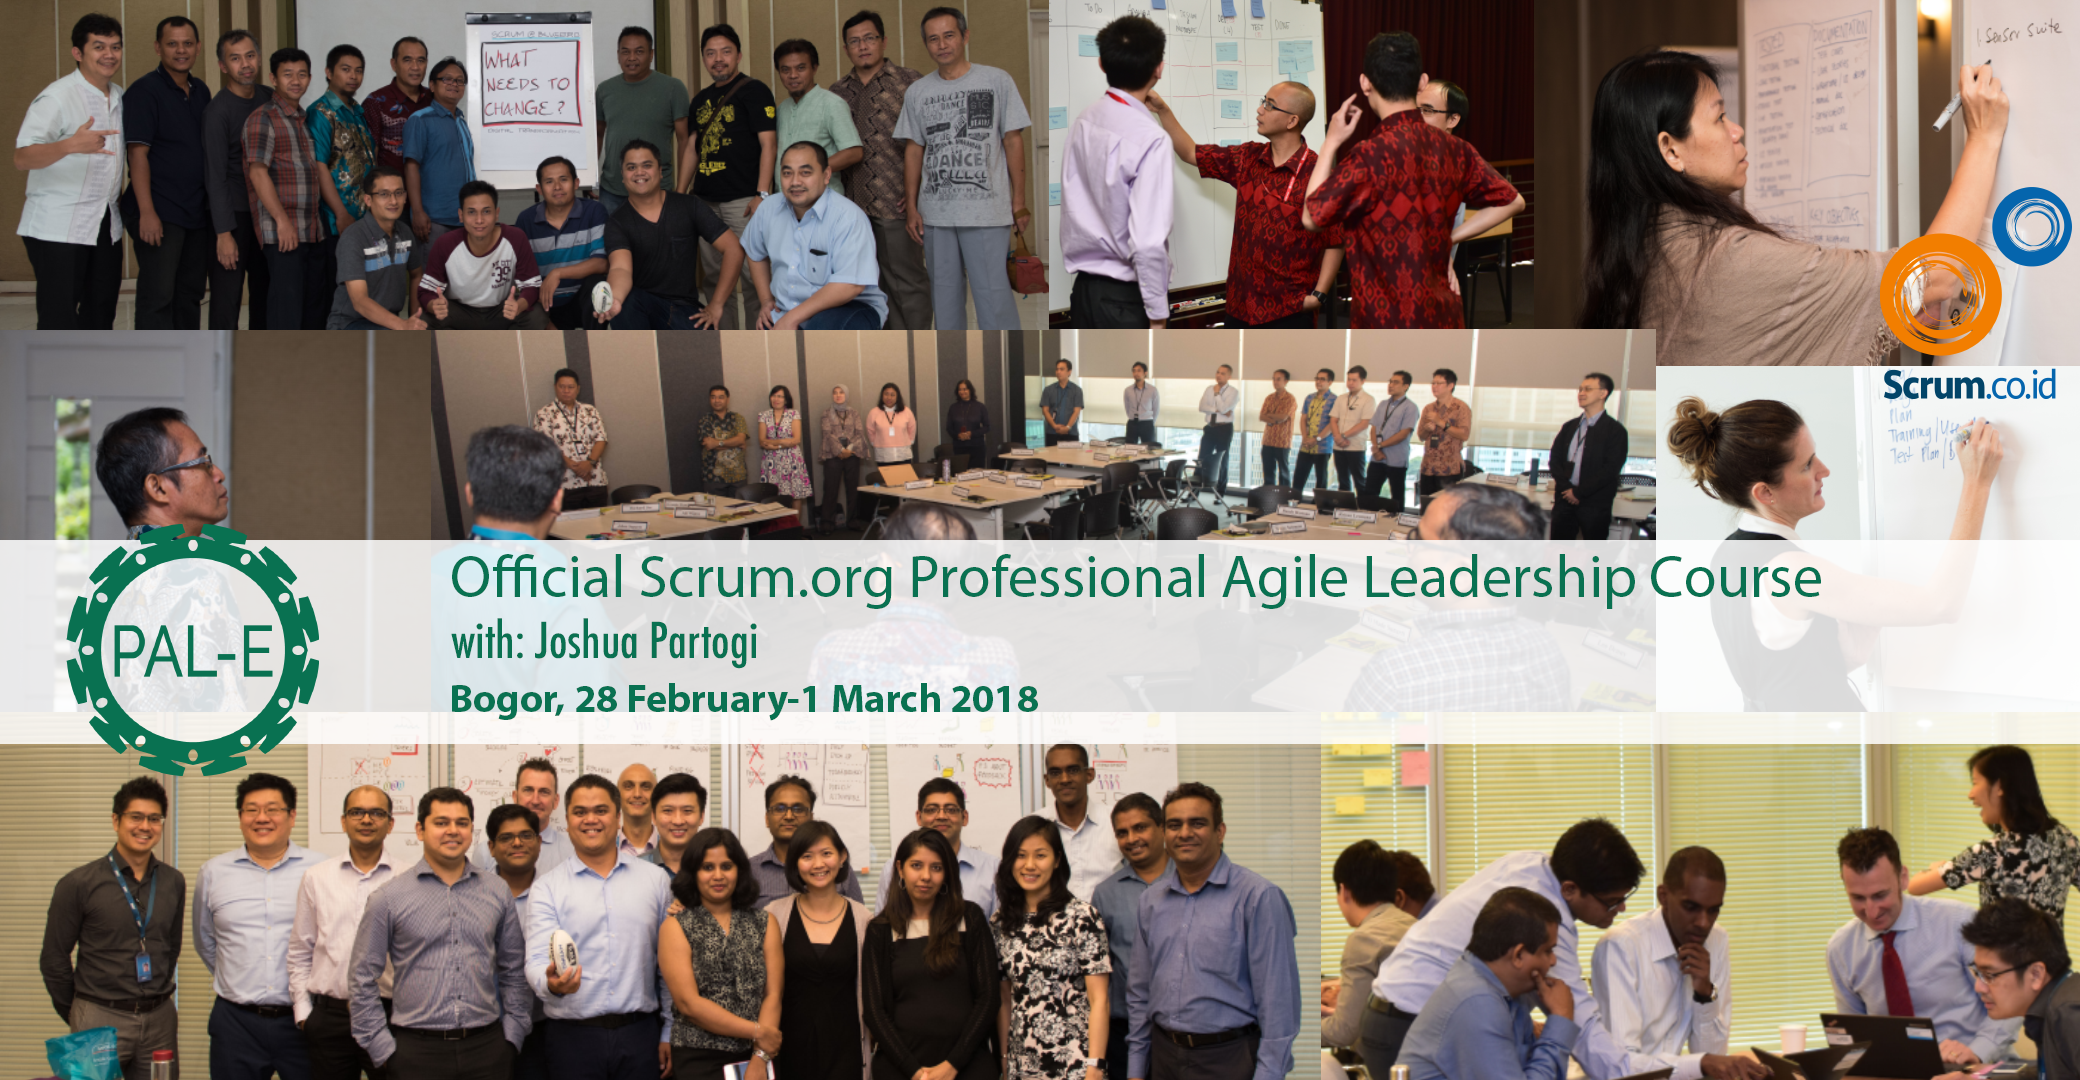 Professional Agile Leadership in Bogor with Joshua Partogi